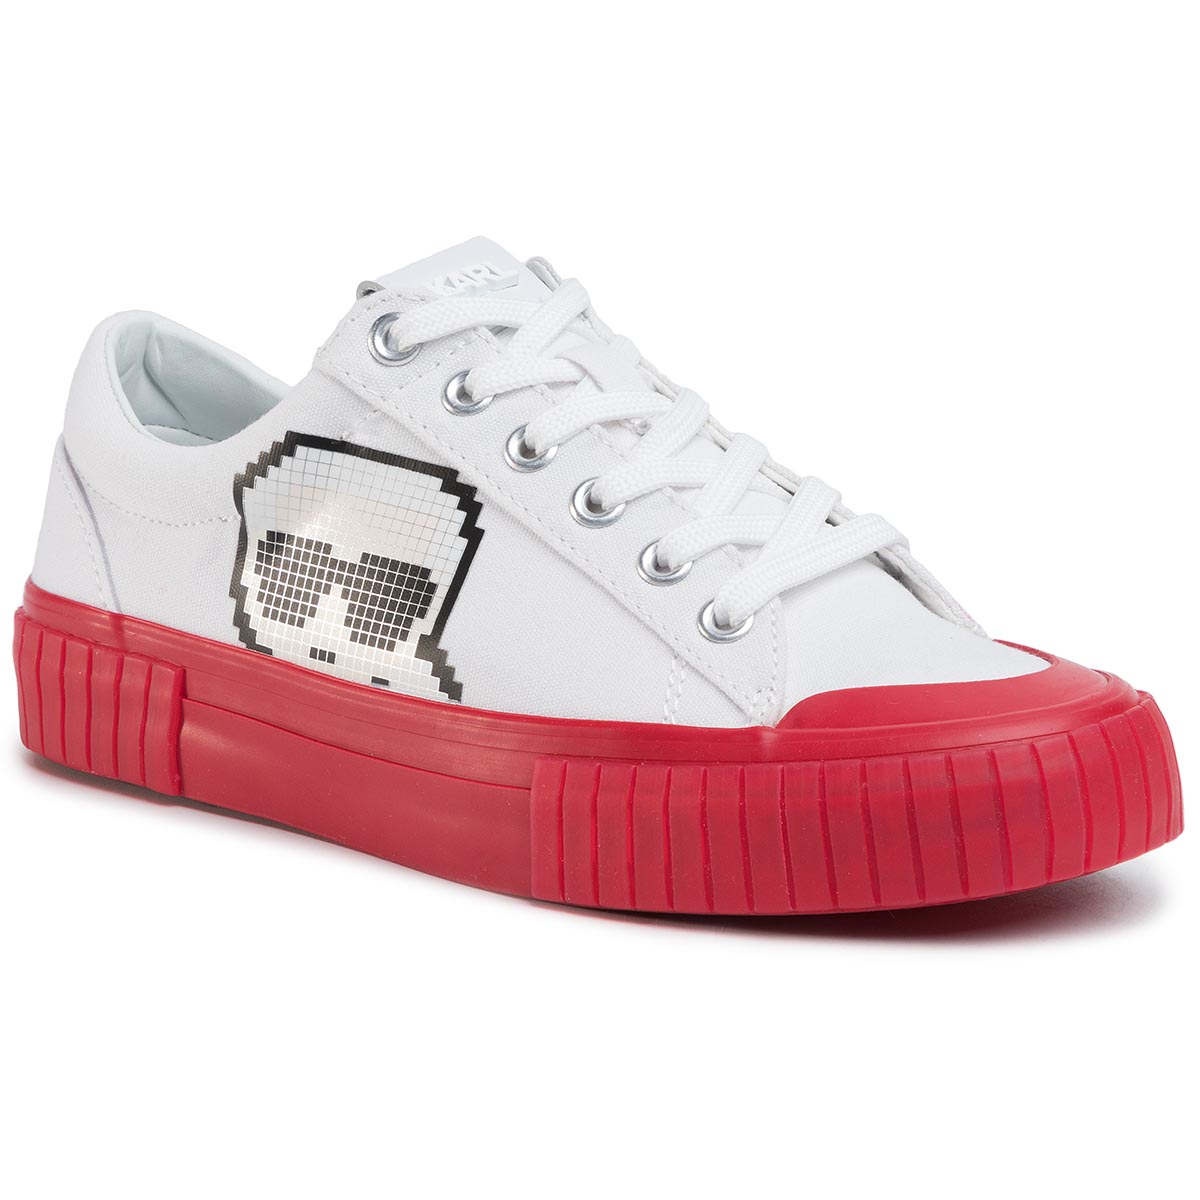 Sneakers KARL LAGERFELD - KL60213 White Canvas W/Red